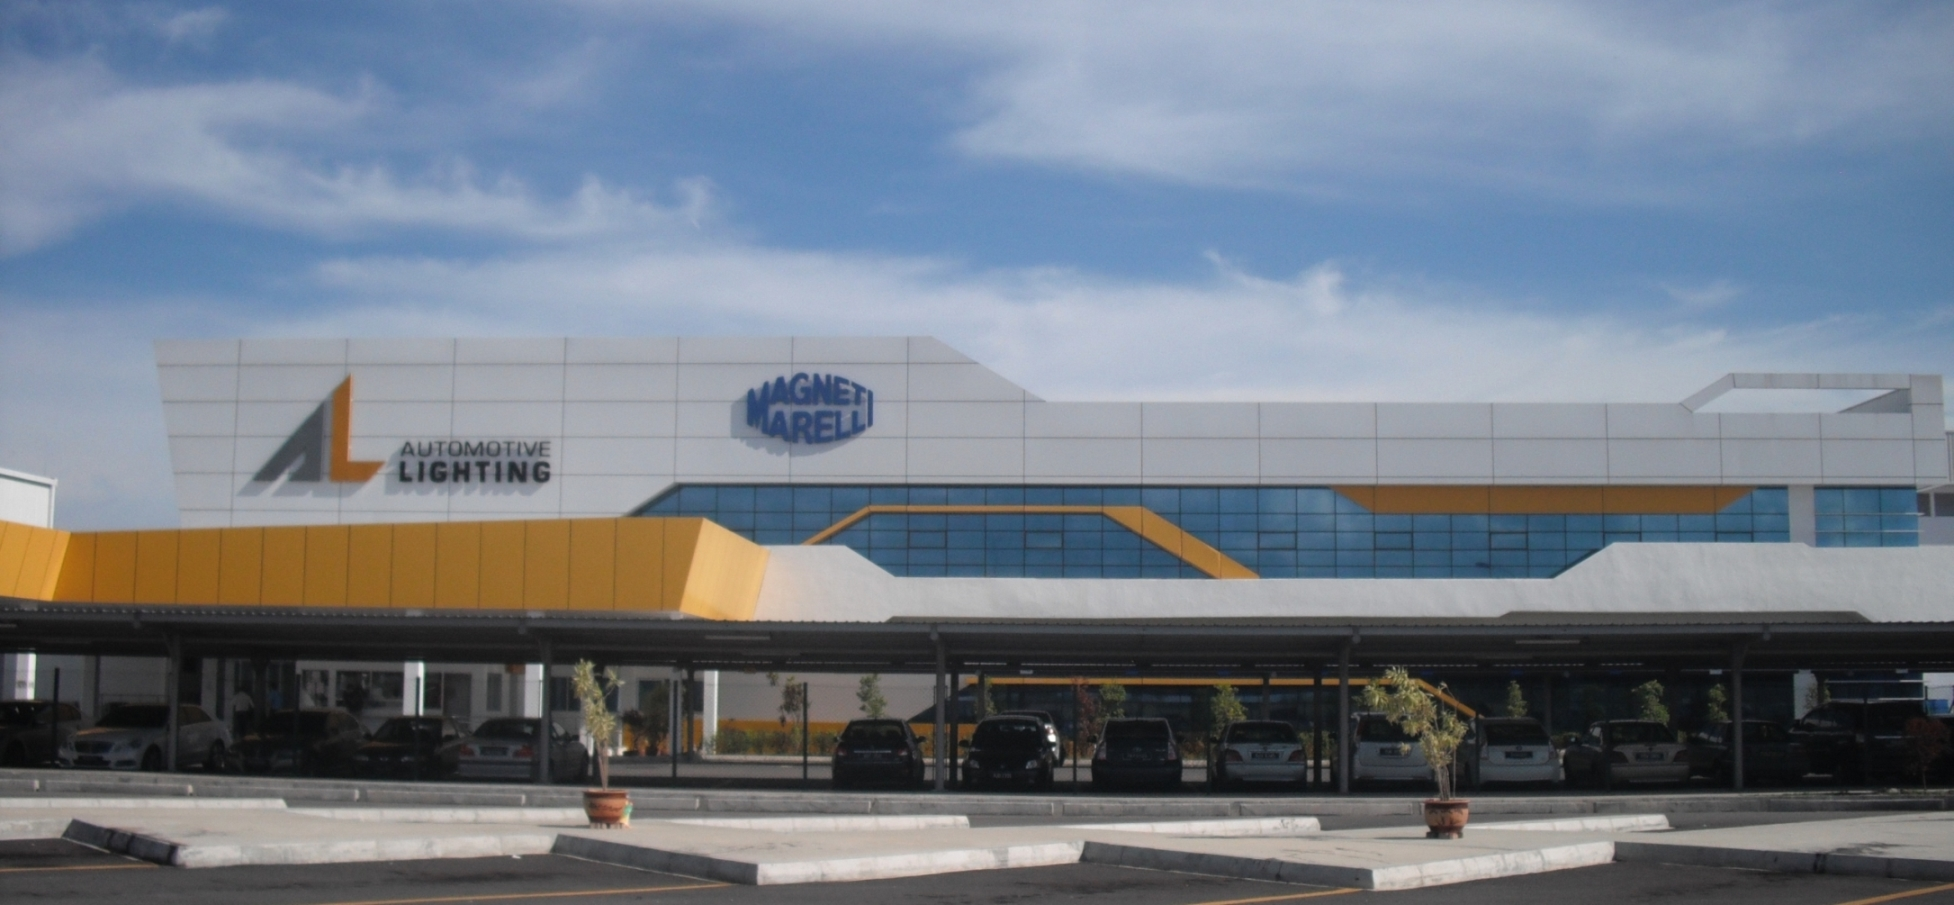 Magneti Marelli inaugurates a new automotive lighting plant in the ASEAN area (Malaysia) & Magneti Marelli inaugurates a new automotive lighting plant in the ...